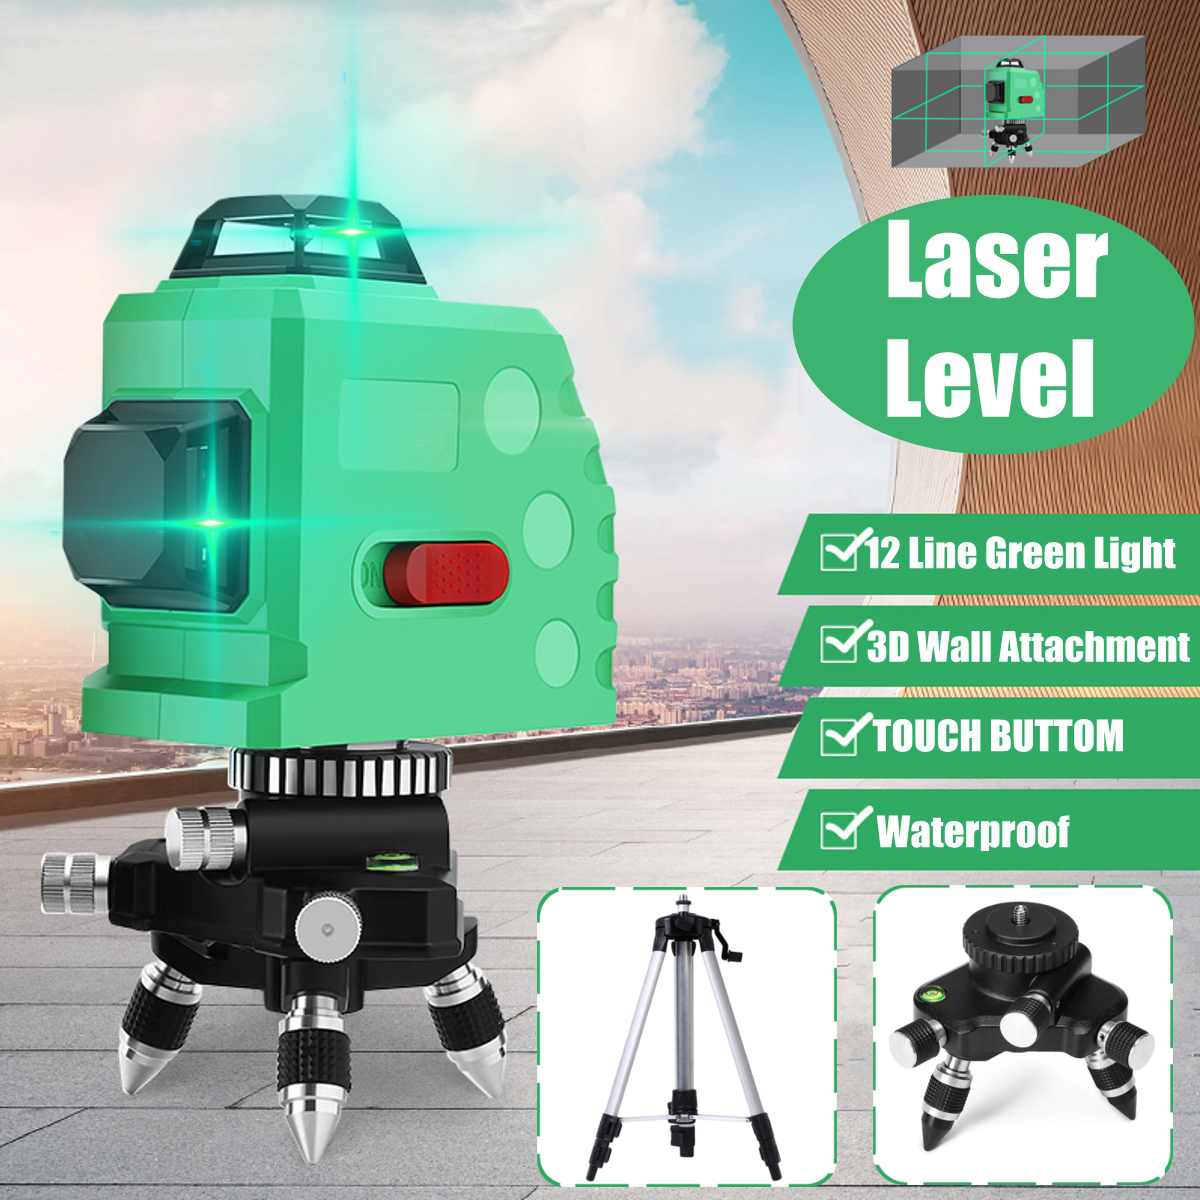 12 Line 360 Horizontal Vertical Cross 3D Green Light Laser Level Self-Leveling Measure Super Powerful Laser Beam12 Line 360 Horizontal Vertical Cross 3D Green Light Laser Level Self-Leveling Measure Super Powerful Laser Beam